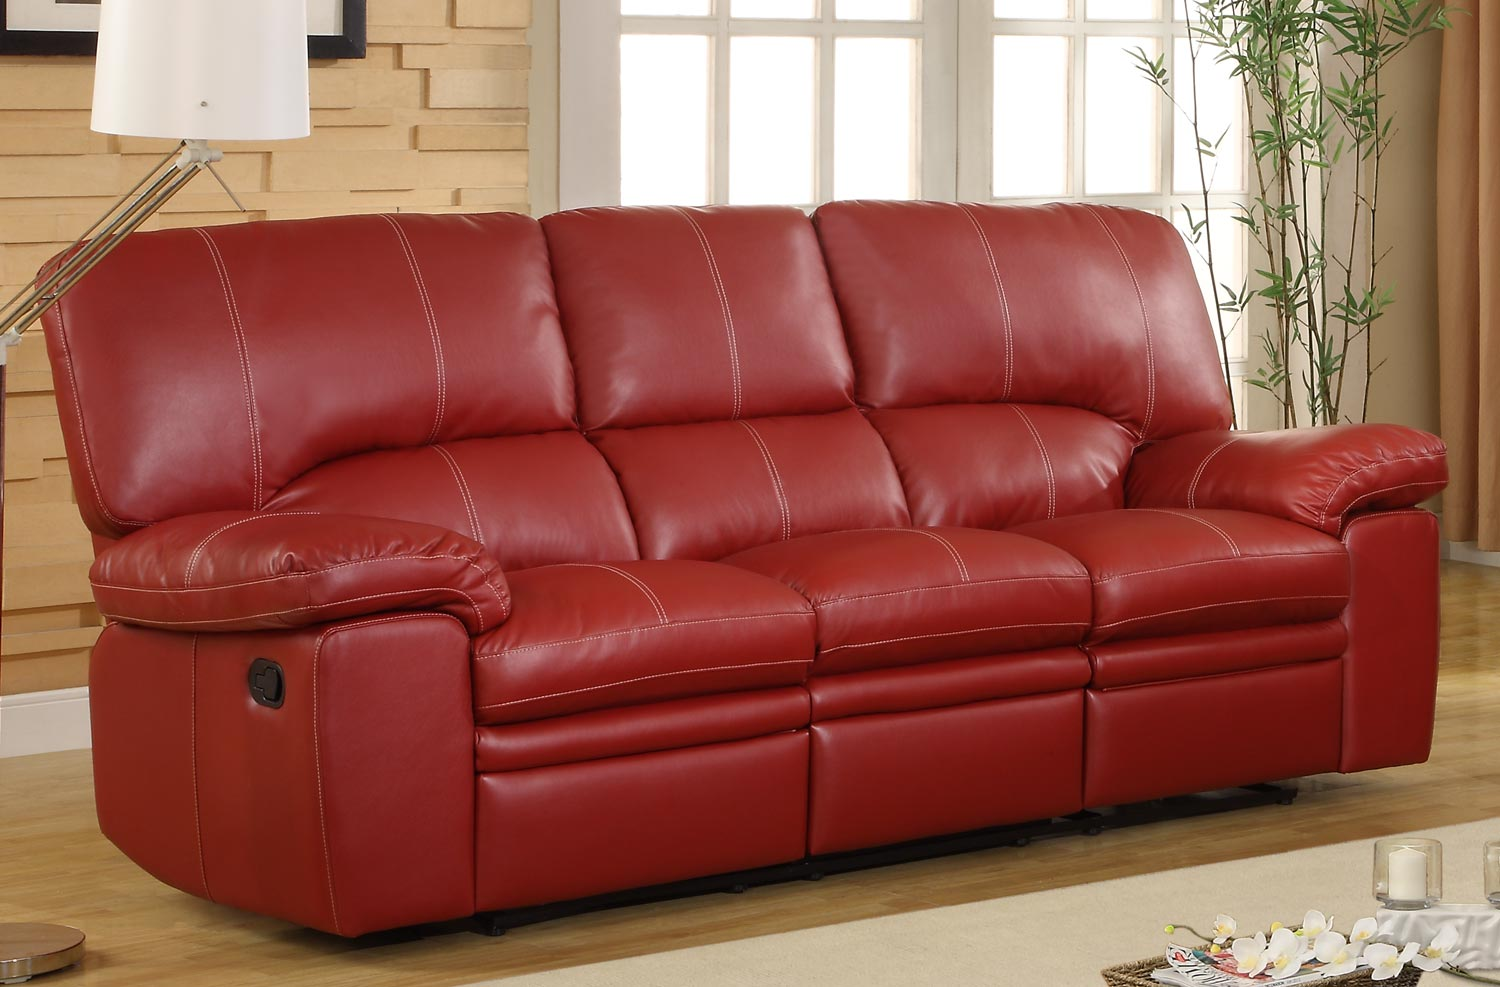 Superb-quality Homelegance RED Kendrick Double Recliner Sofa Bonded Leather Match Product Photo